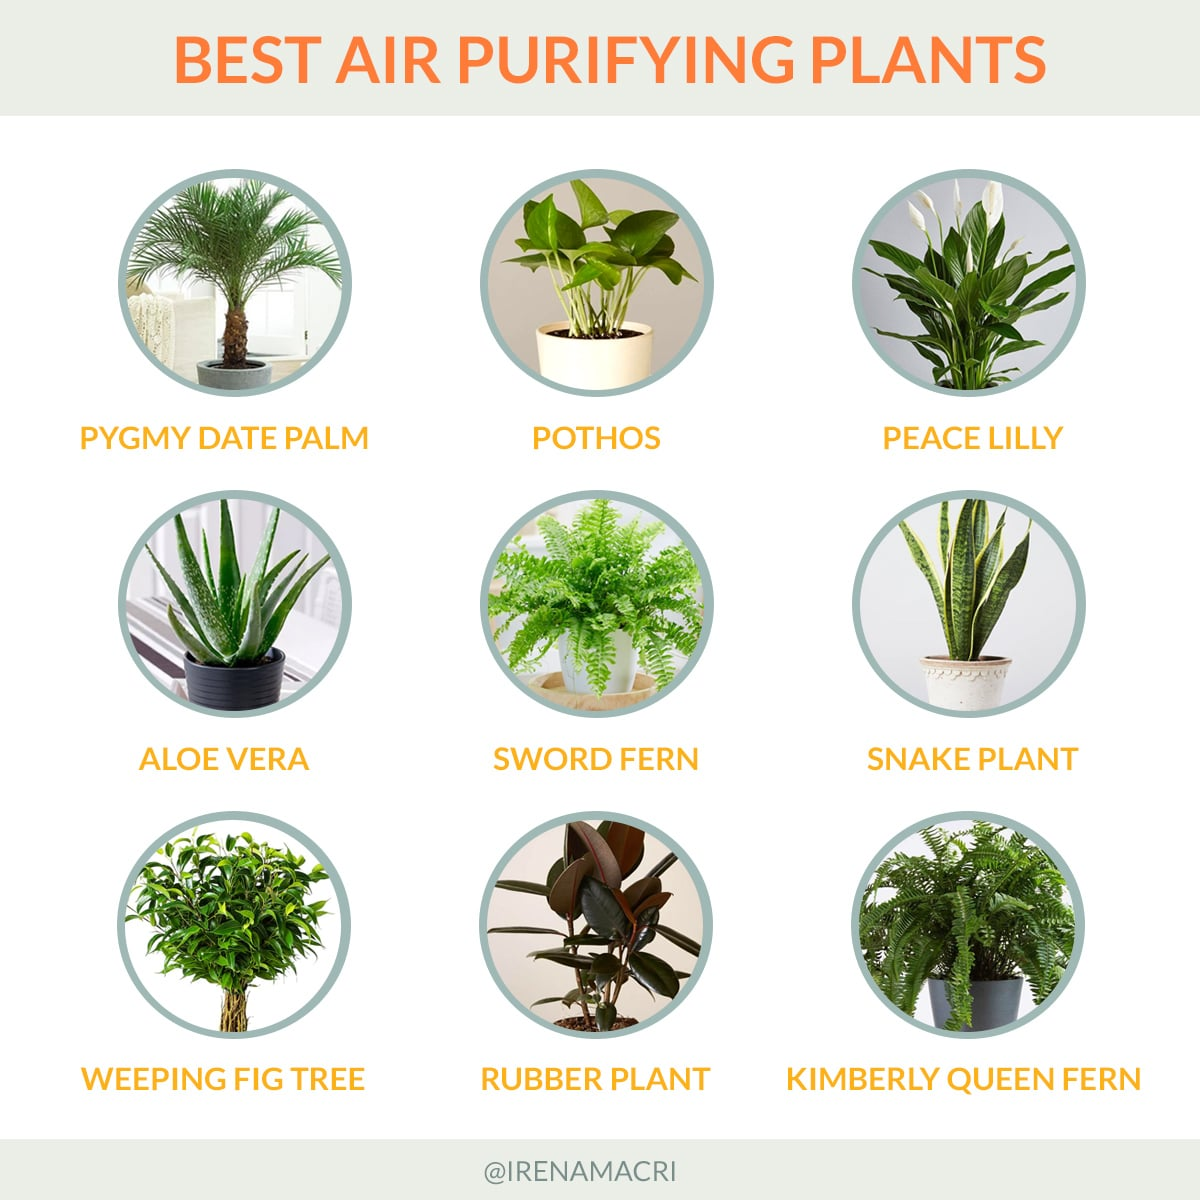 Best air purifying plant for your home office